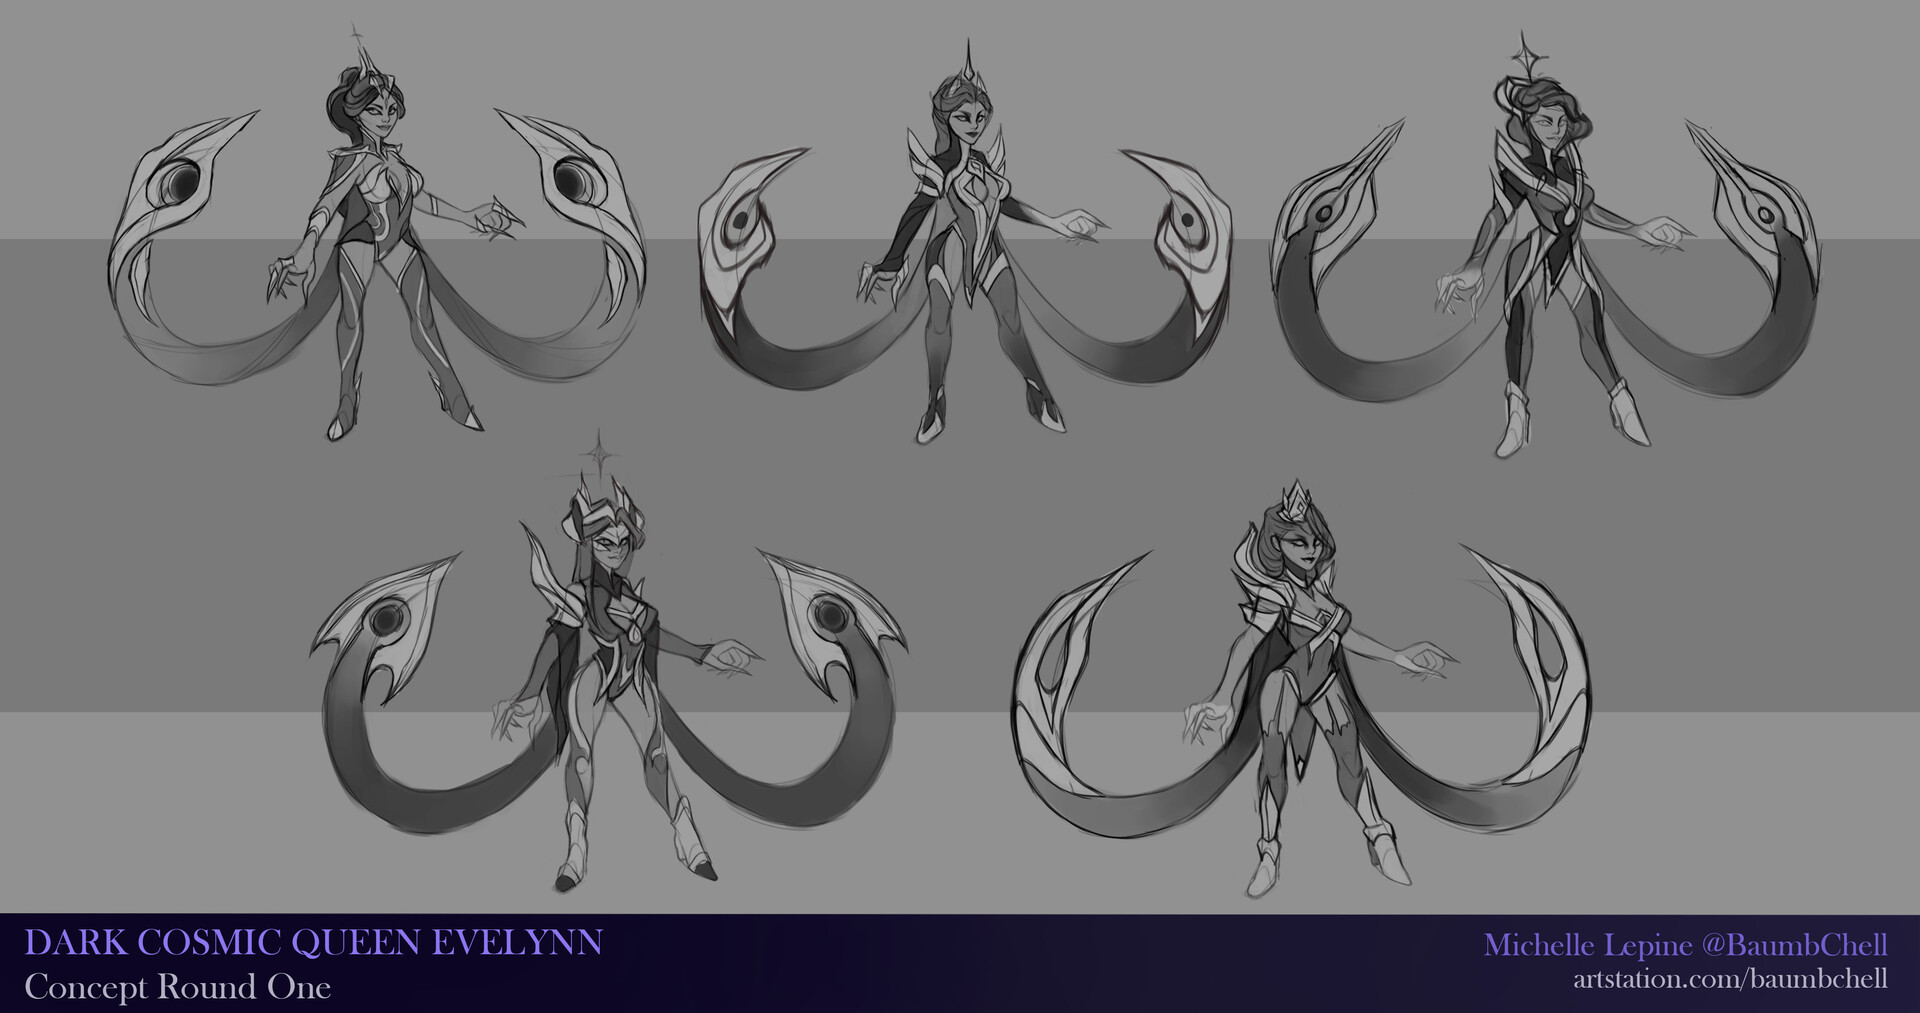 Dark Cosmic Queen Evelynn - godna rywalka dla Dark Cosmic